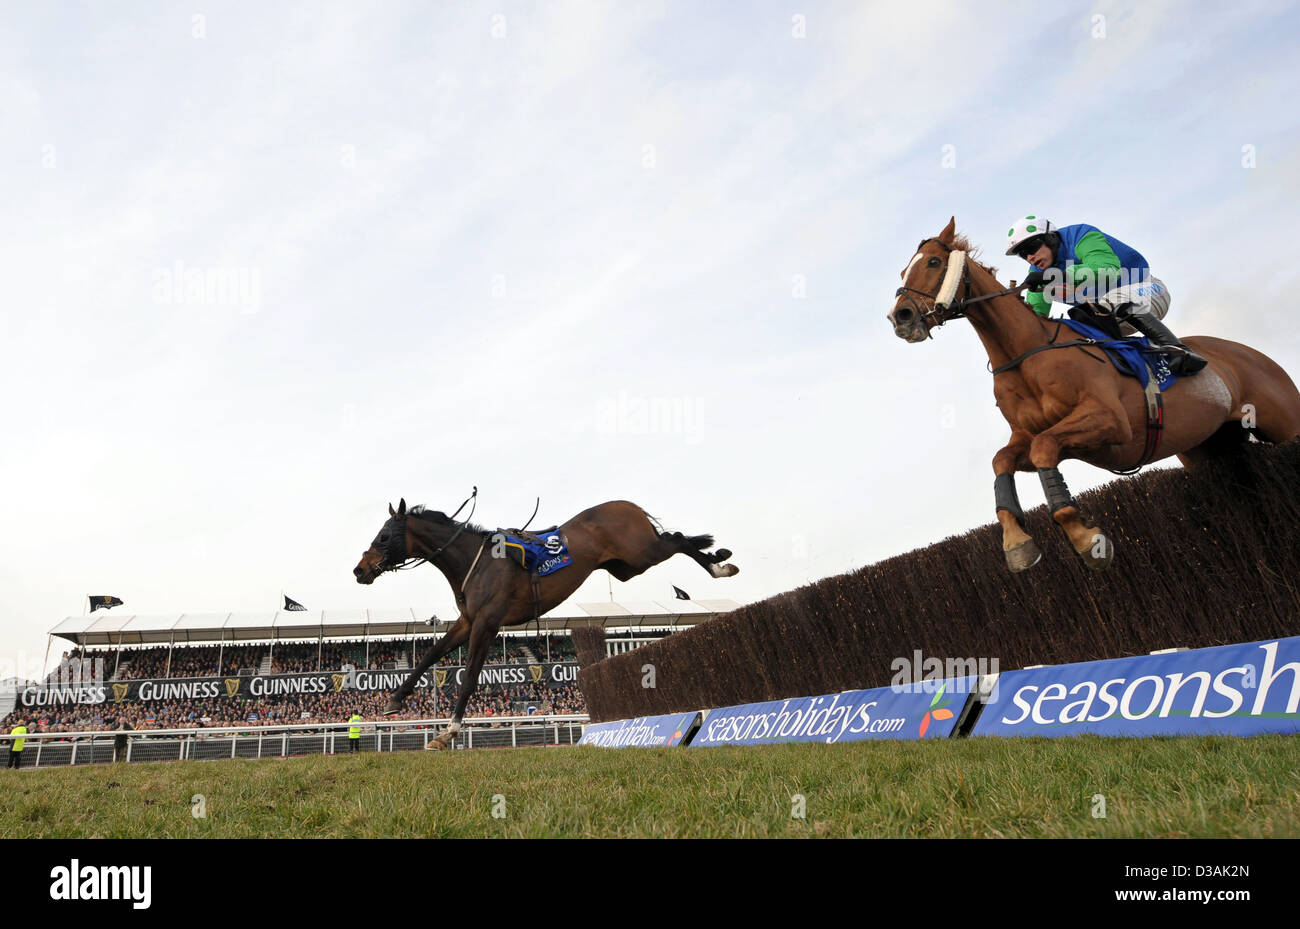 Horses jump a fence during The Cheltenham Festival an annual horse racing event in England Stock Photo